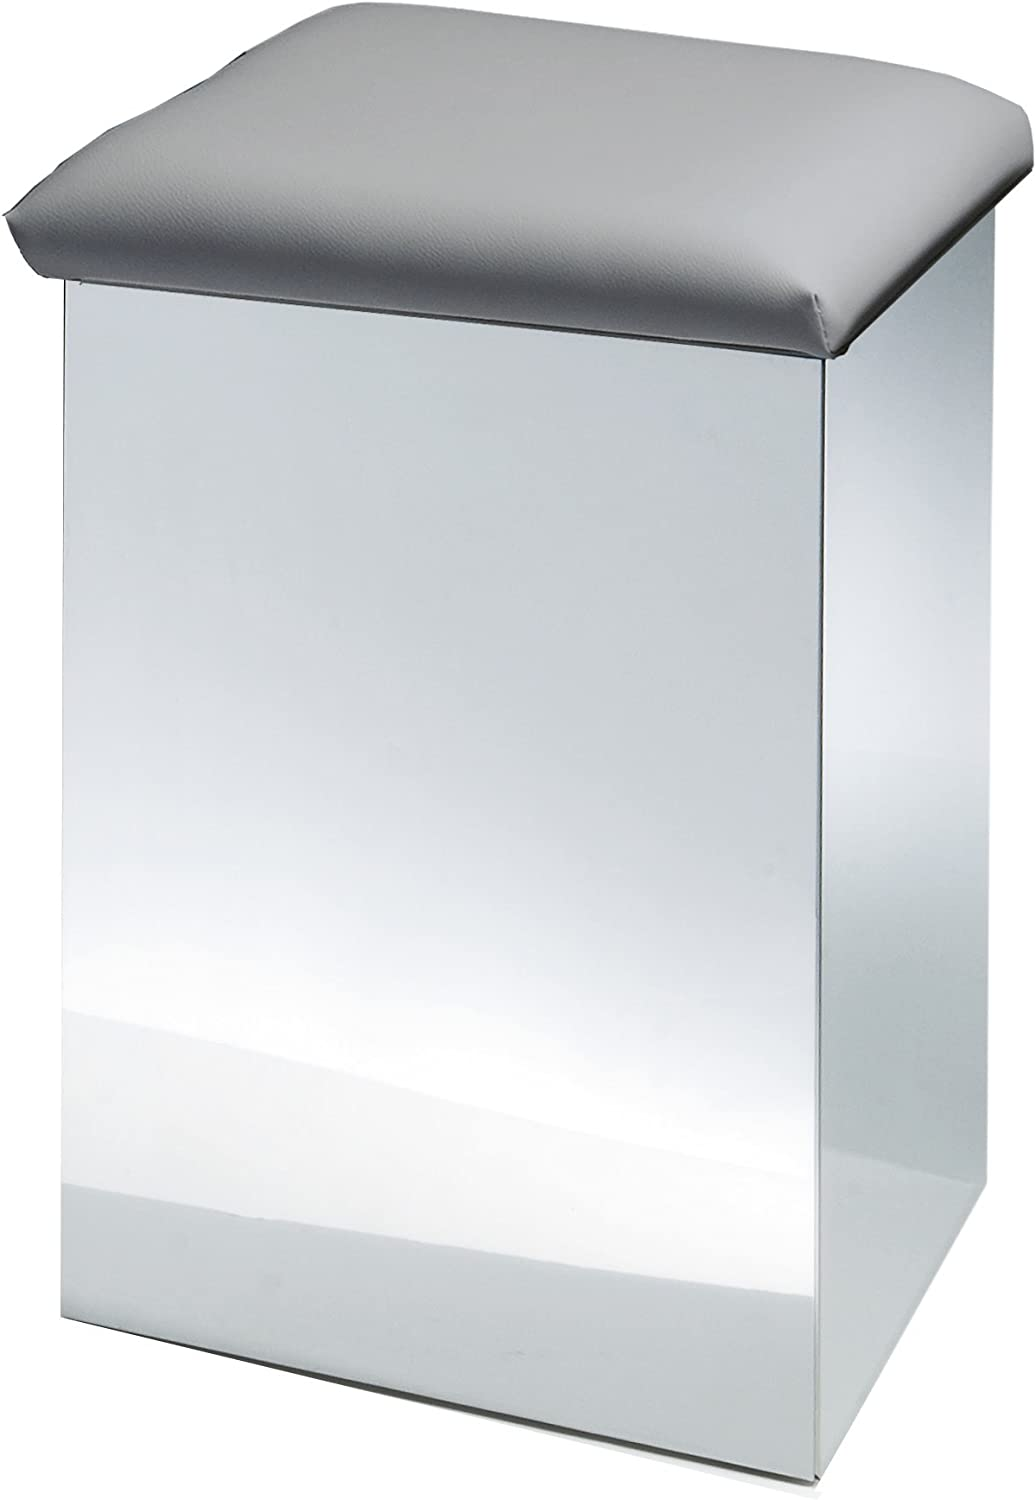 DWBA Hamper Stool Bench Laundry 67% OFF Max 43% OFF of fixed price Chrome Steel Basket Artific